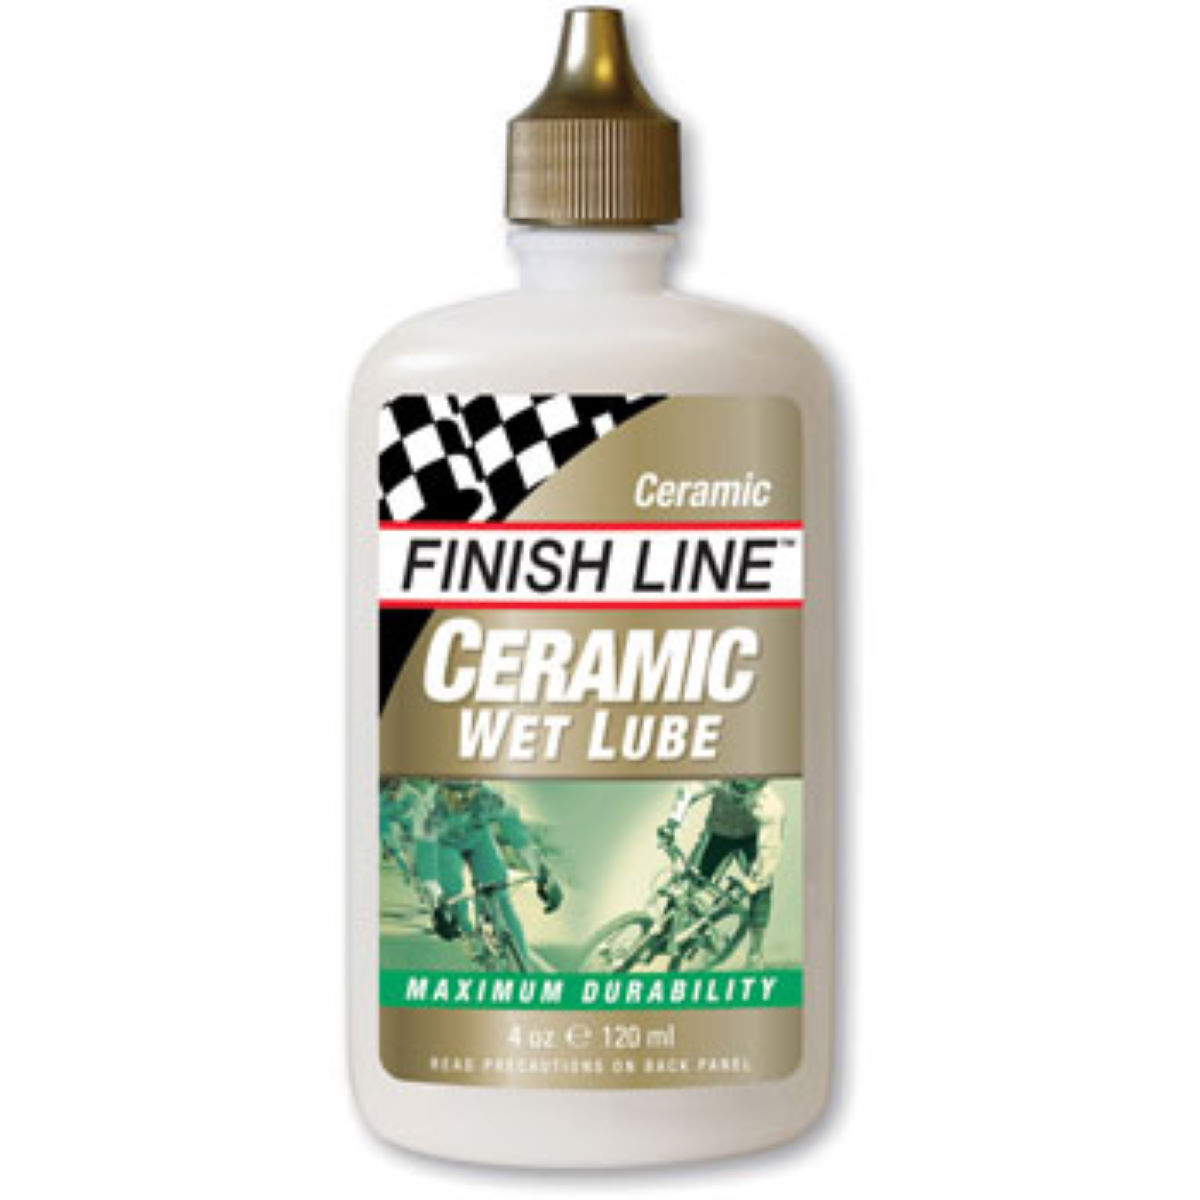 Finish Line Ceramic Wet Lubricant 120ml Bottle